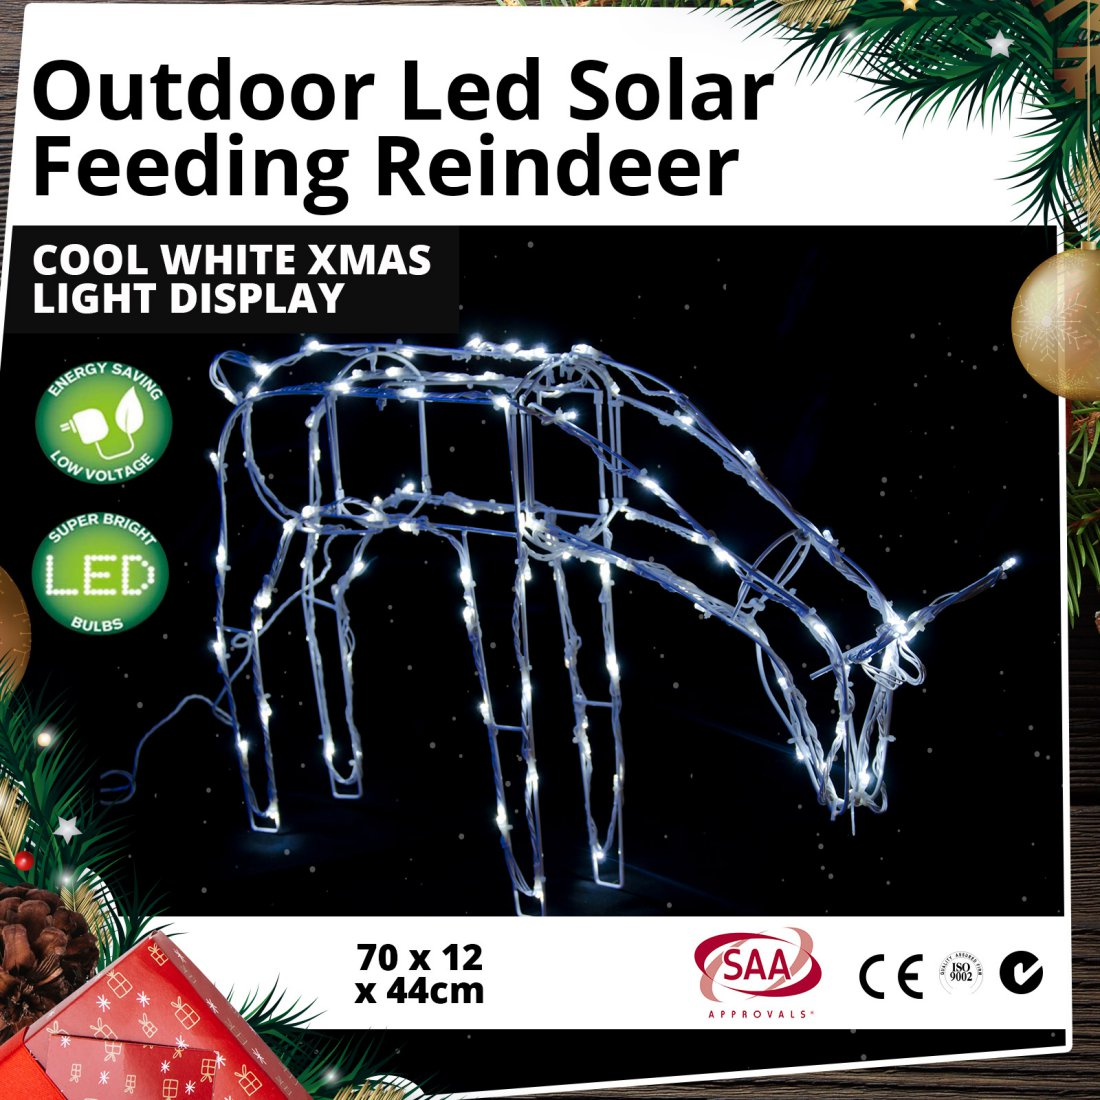 Outdoor LED Solar Feeding Reindeer Cool White Christmas Light Display